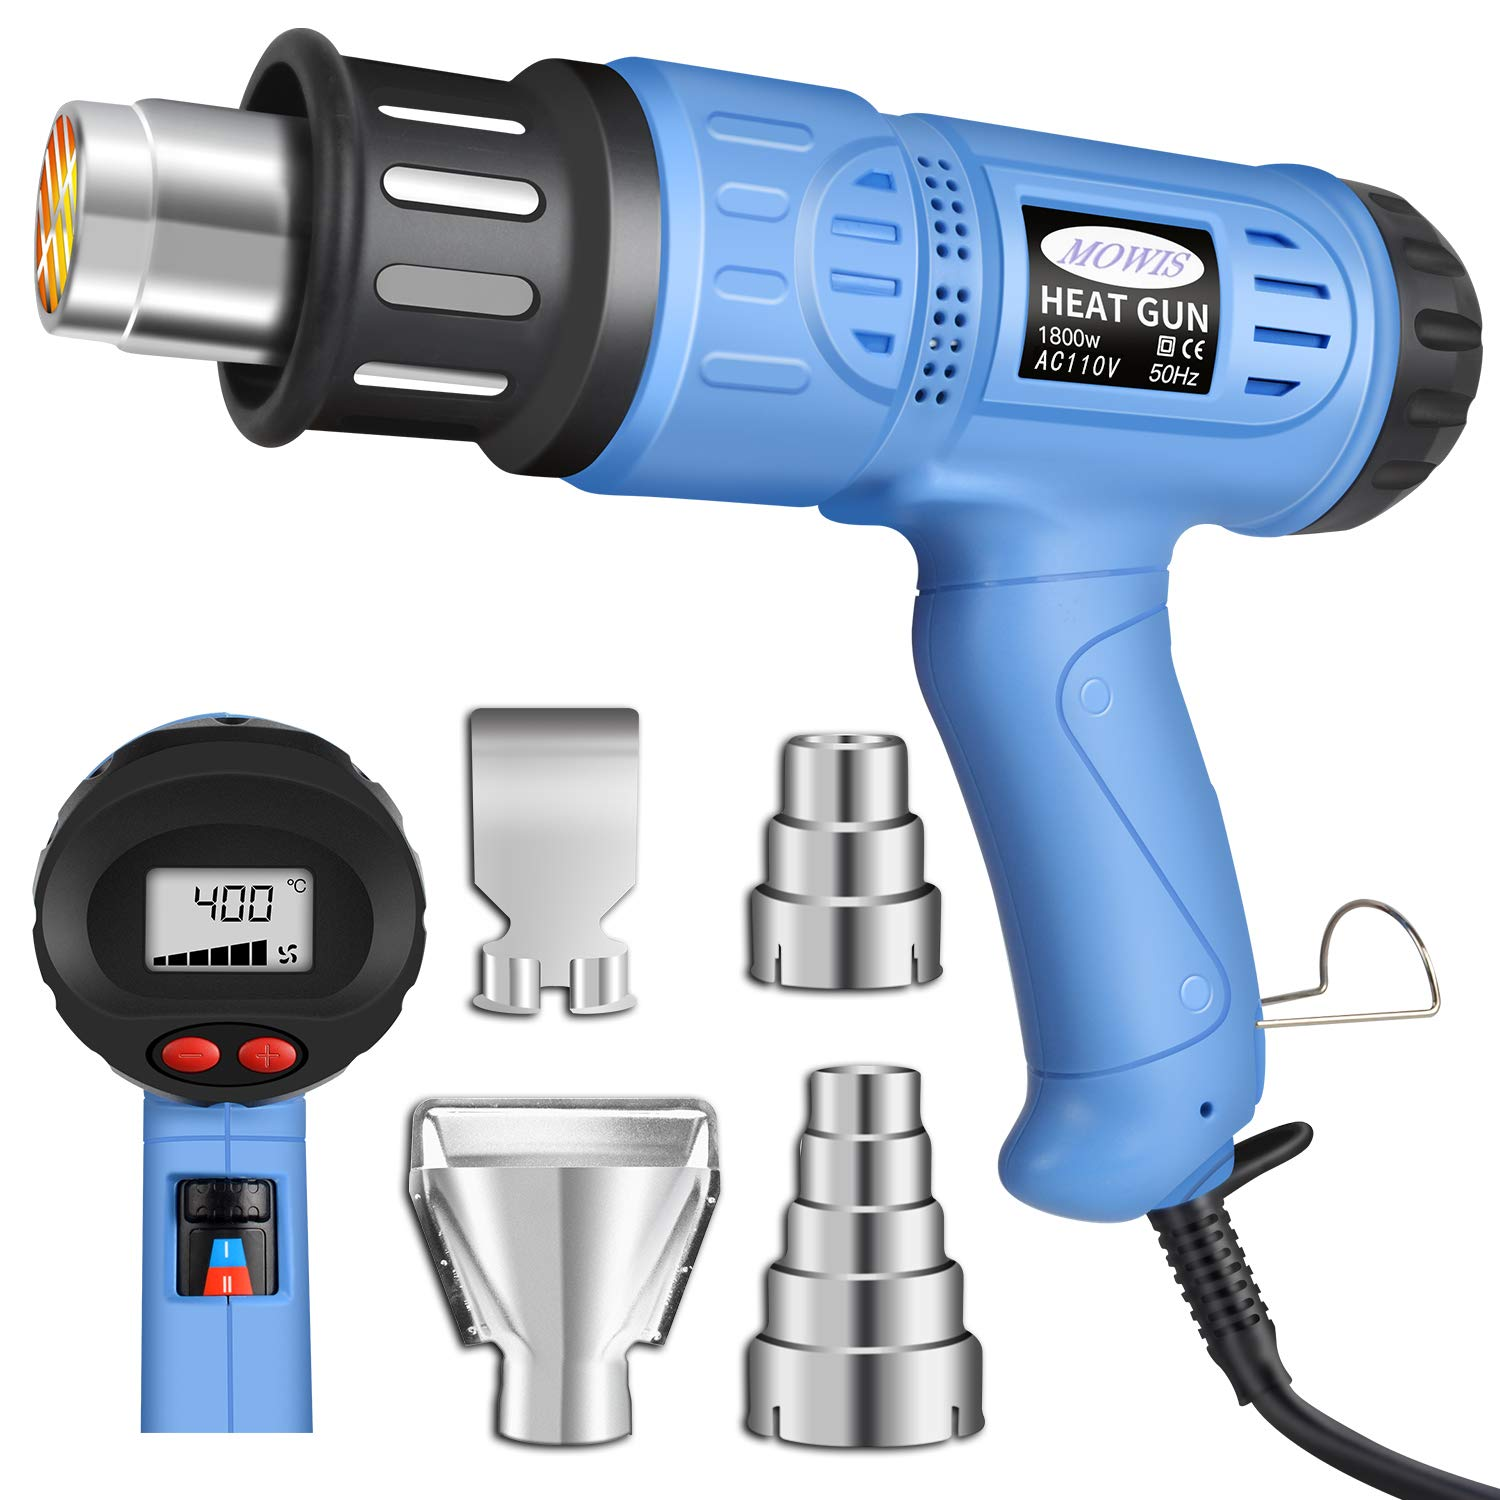 Heat Gun, Mowis 1800W Heavy Duty Hot Air Shrink Gun with LCD Display, Temperature and Wind Speed Adjustable